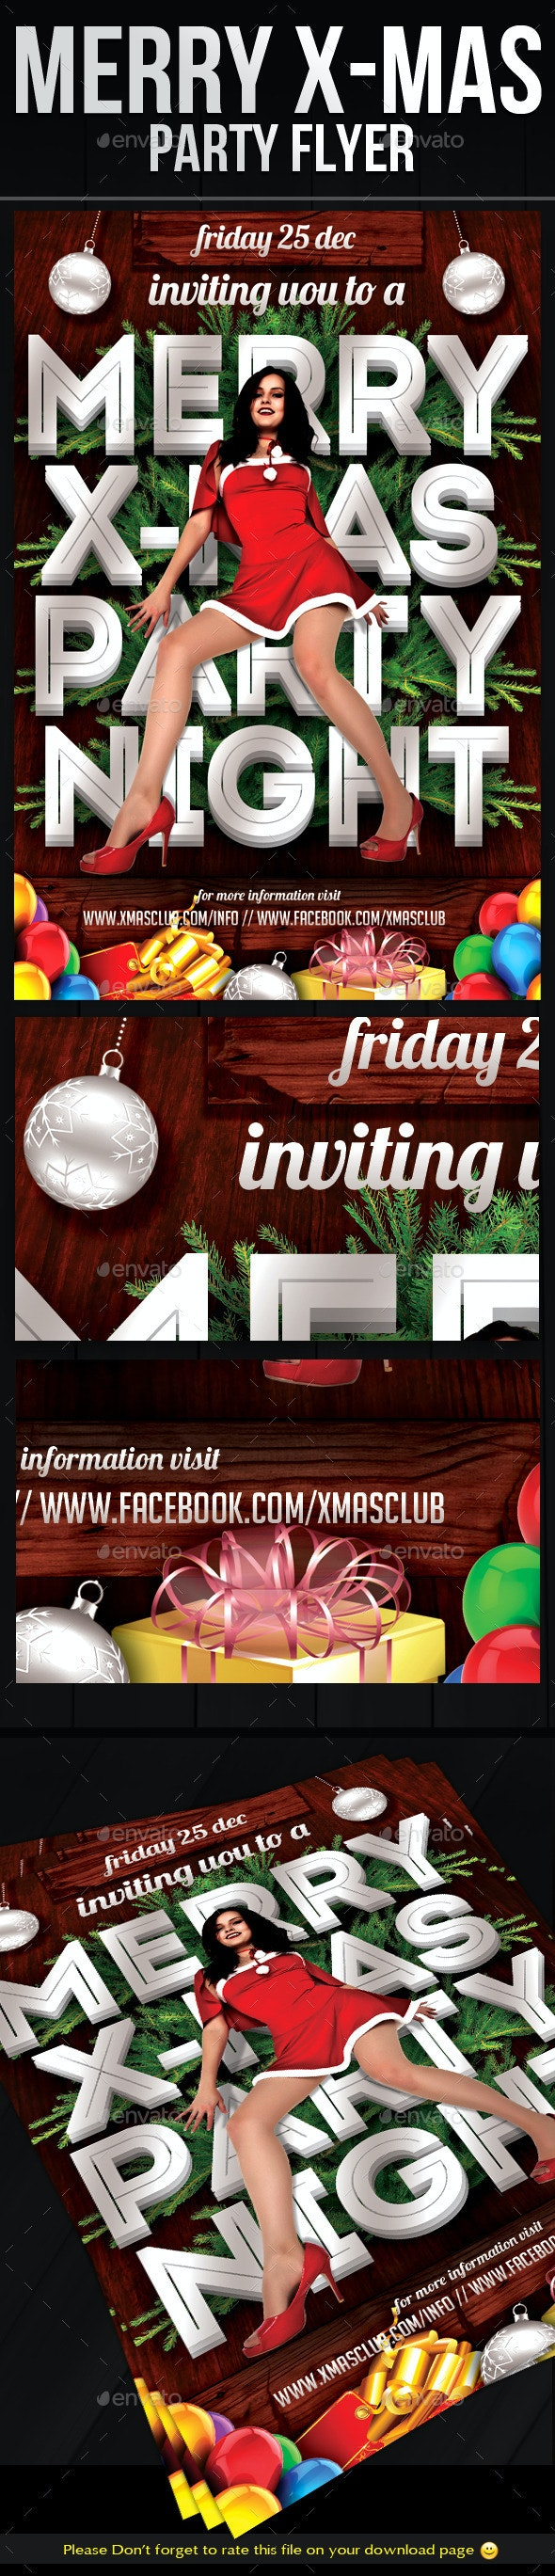 Merry X-Mas Party Flyer Template - Holidays Events